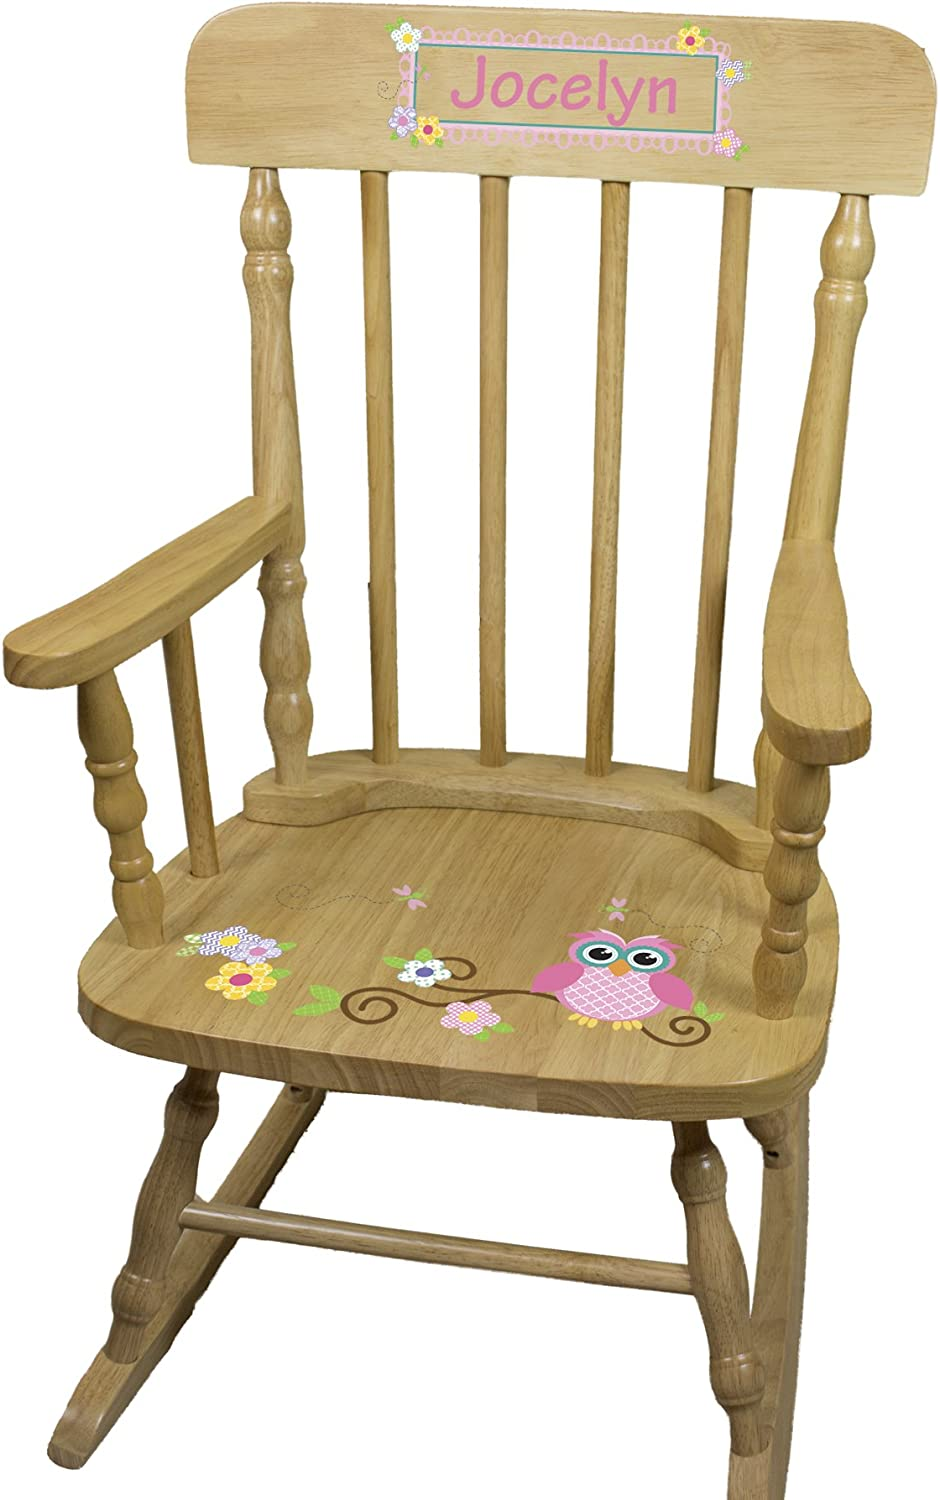 Special price Personalized Child's Wood Chair Owl New York Mall Rocking